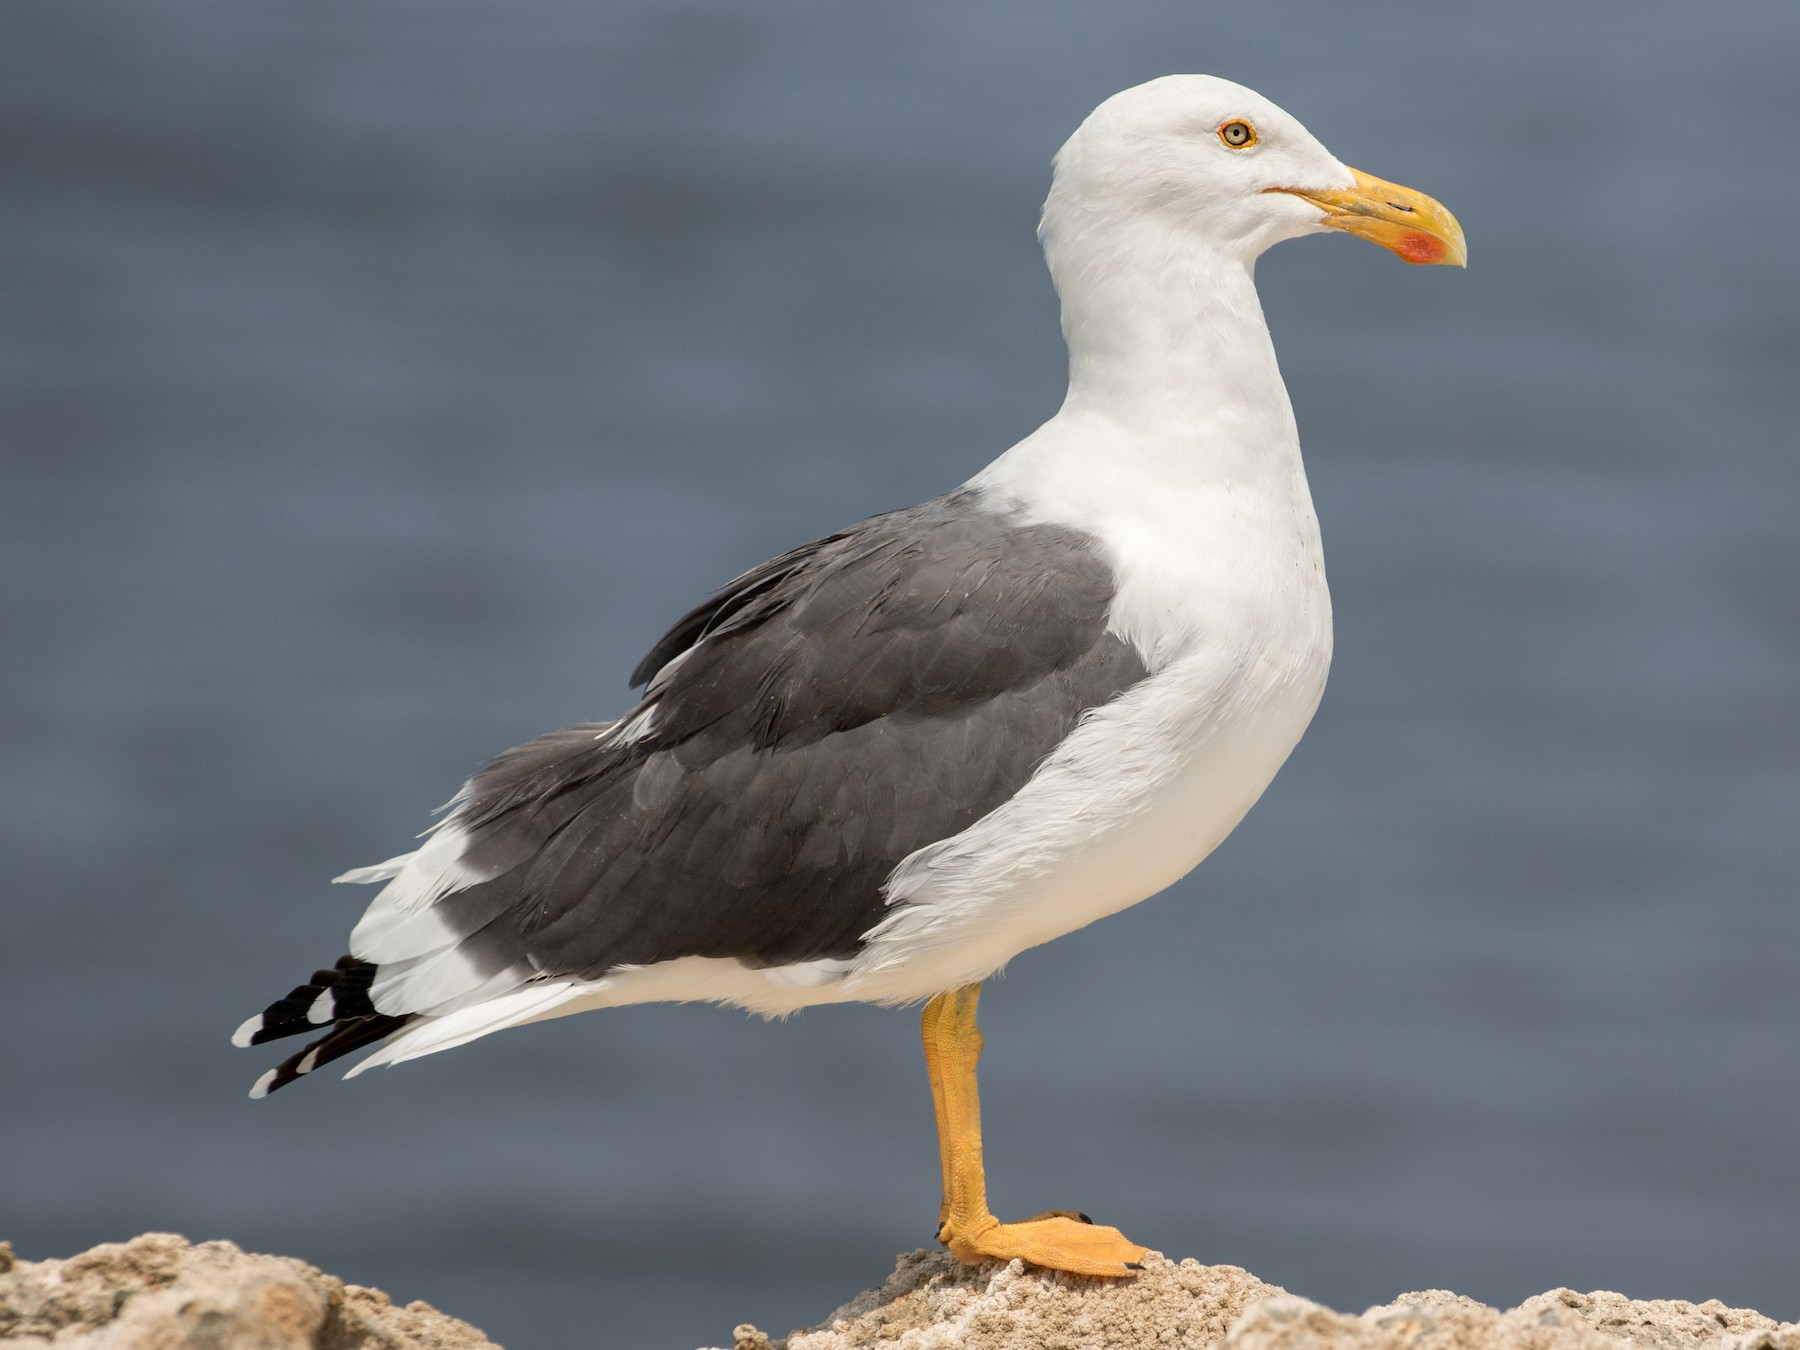 Yellow-footed Gull - Tanner Martin